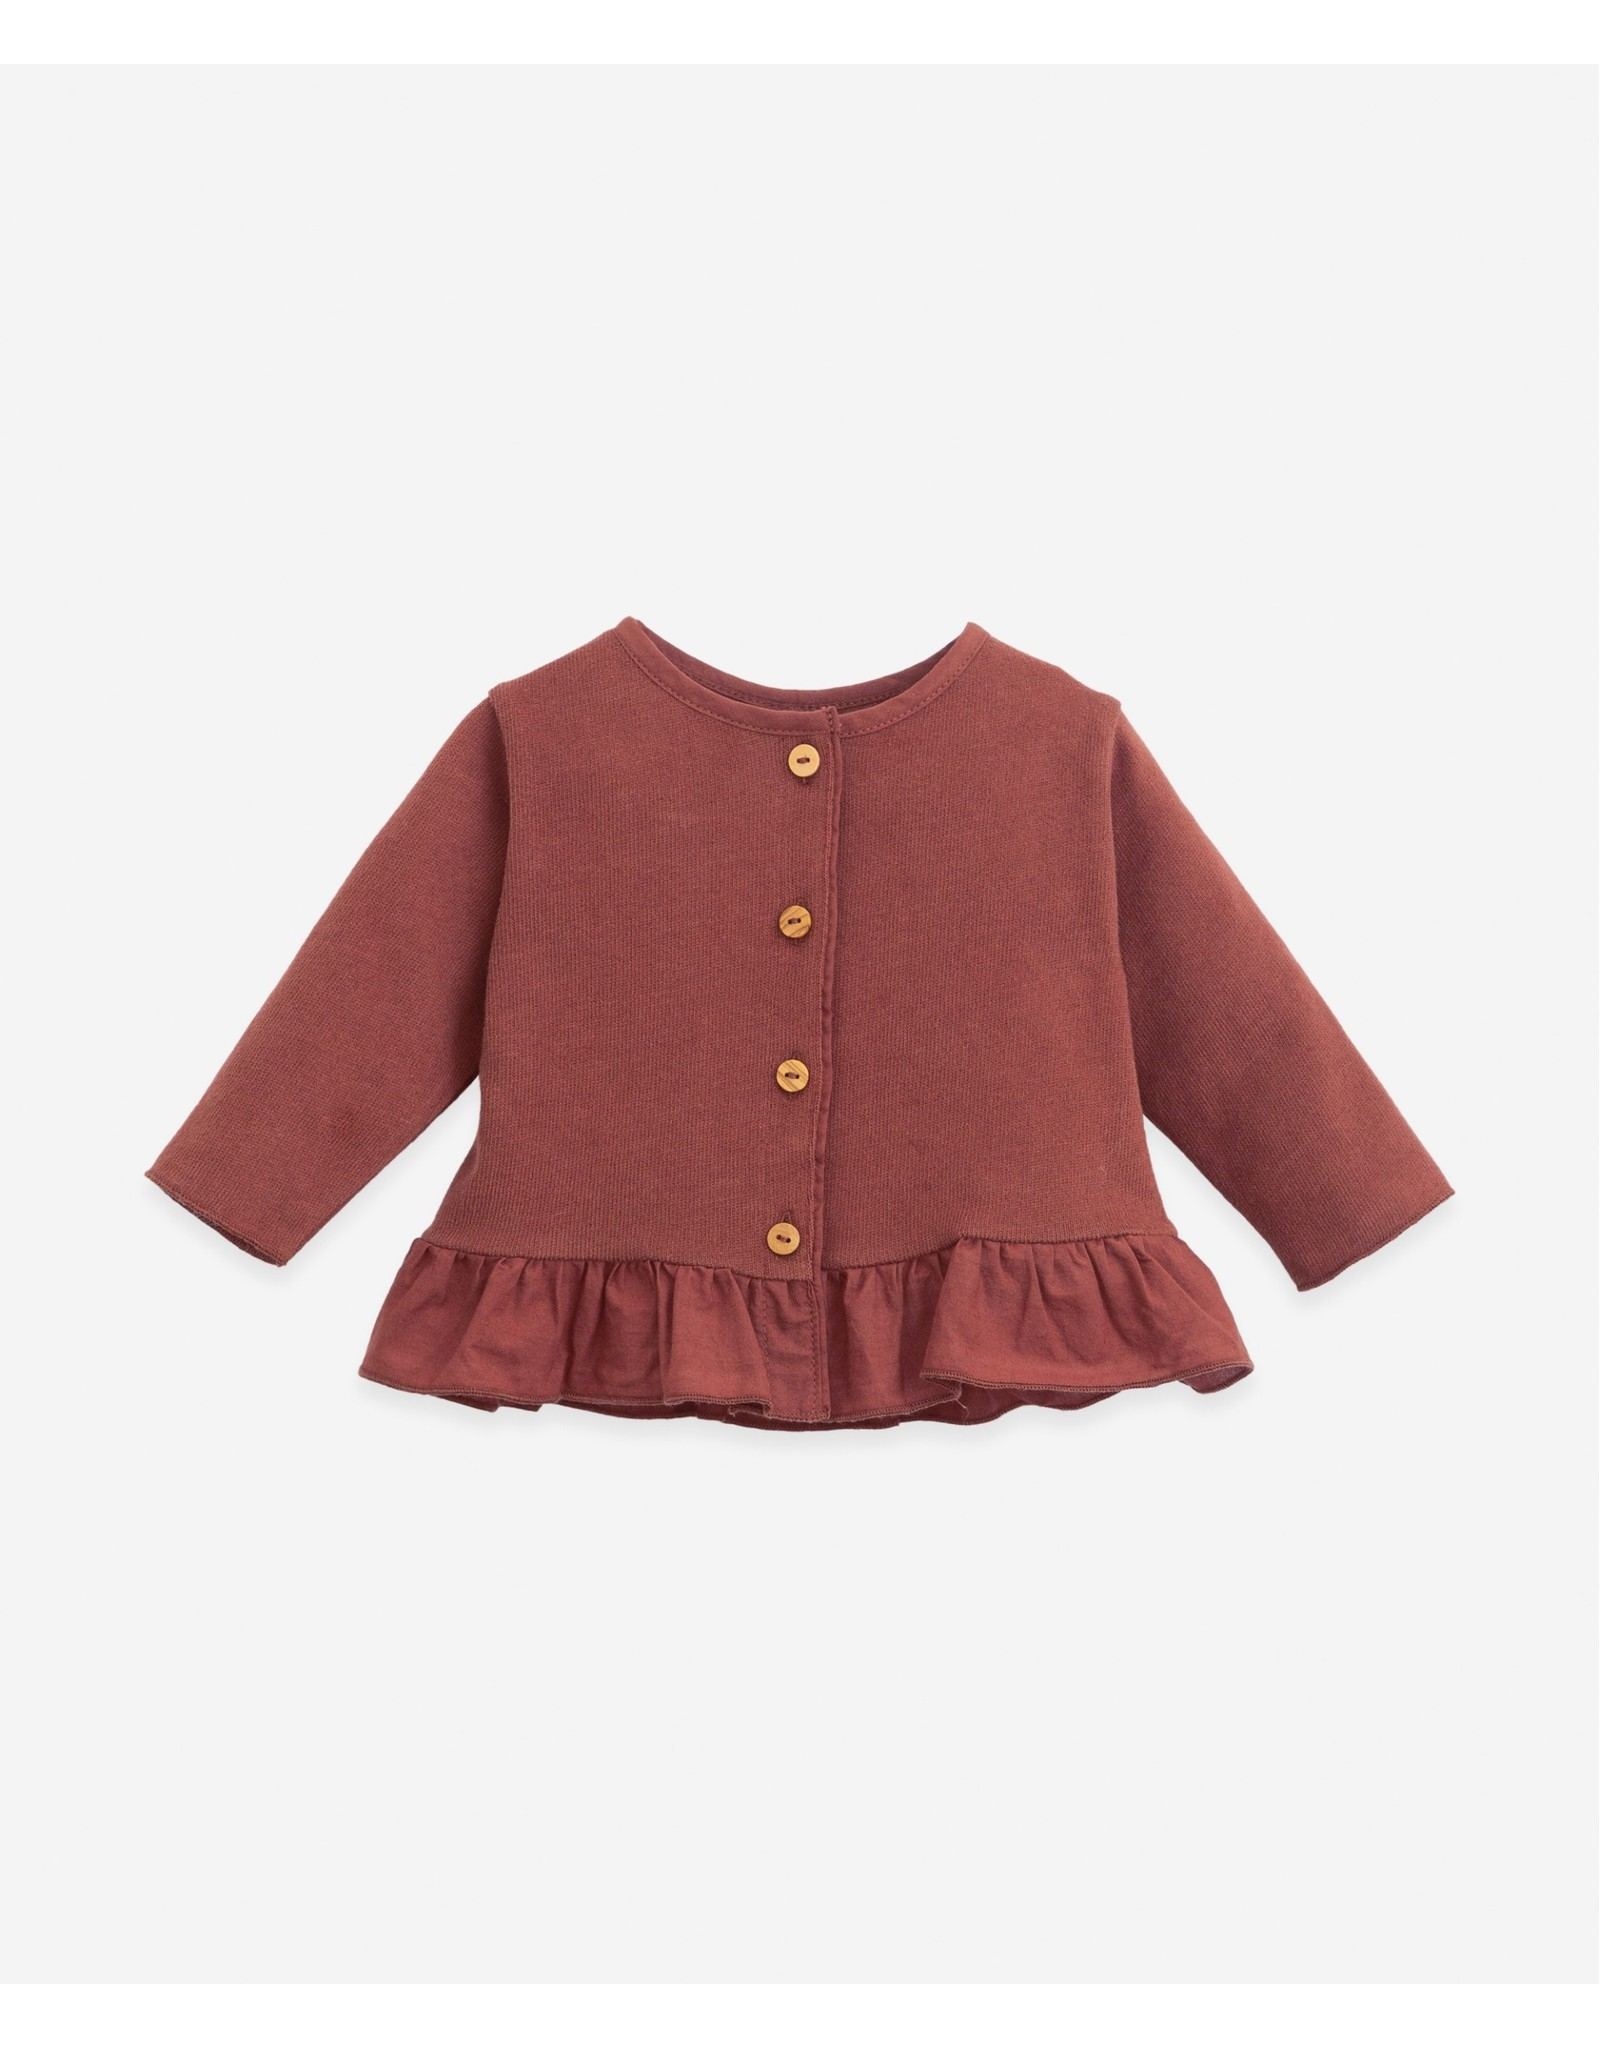 Play Up Play Up Coat in Organic Cotton Farm